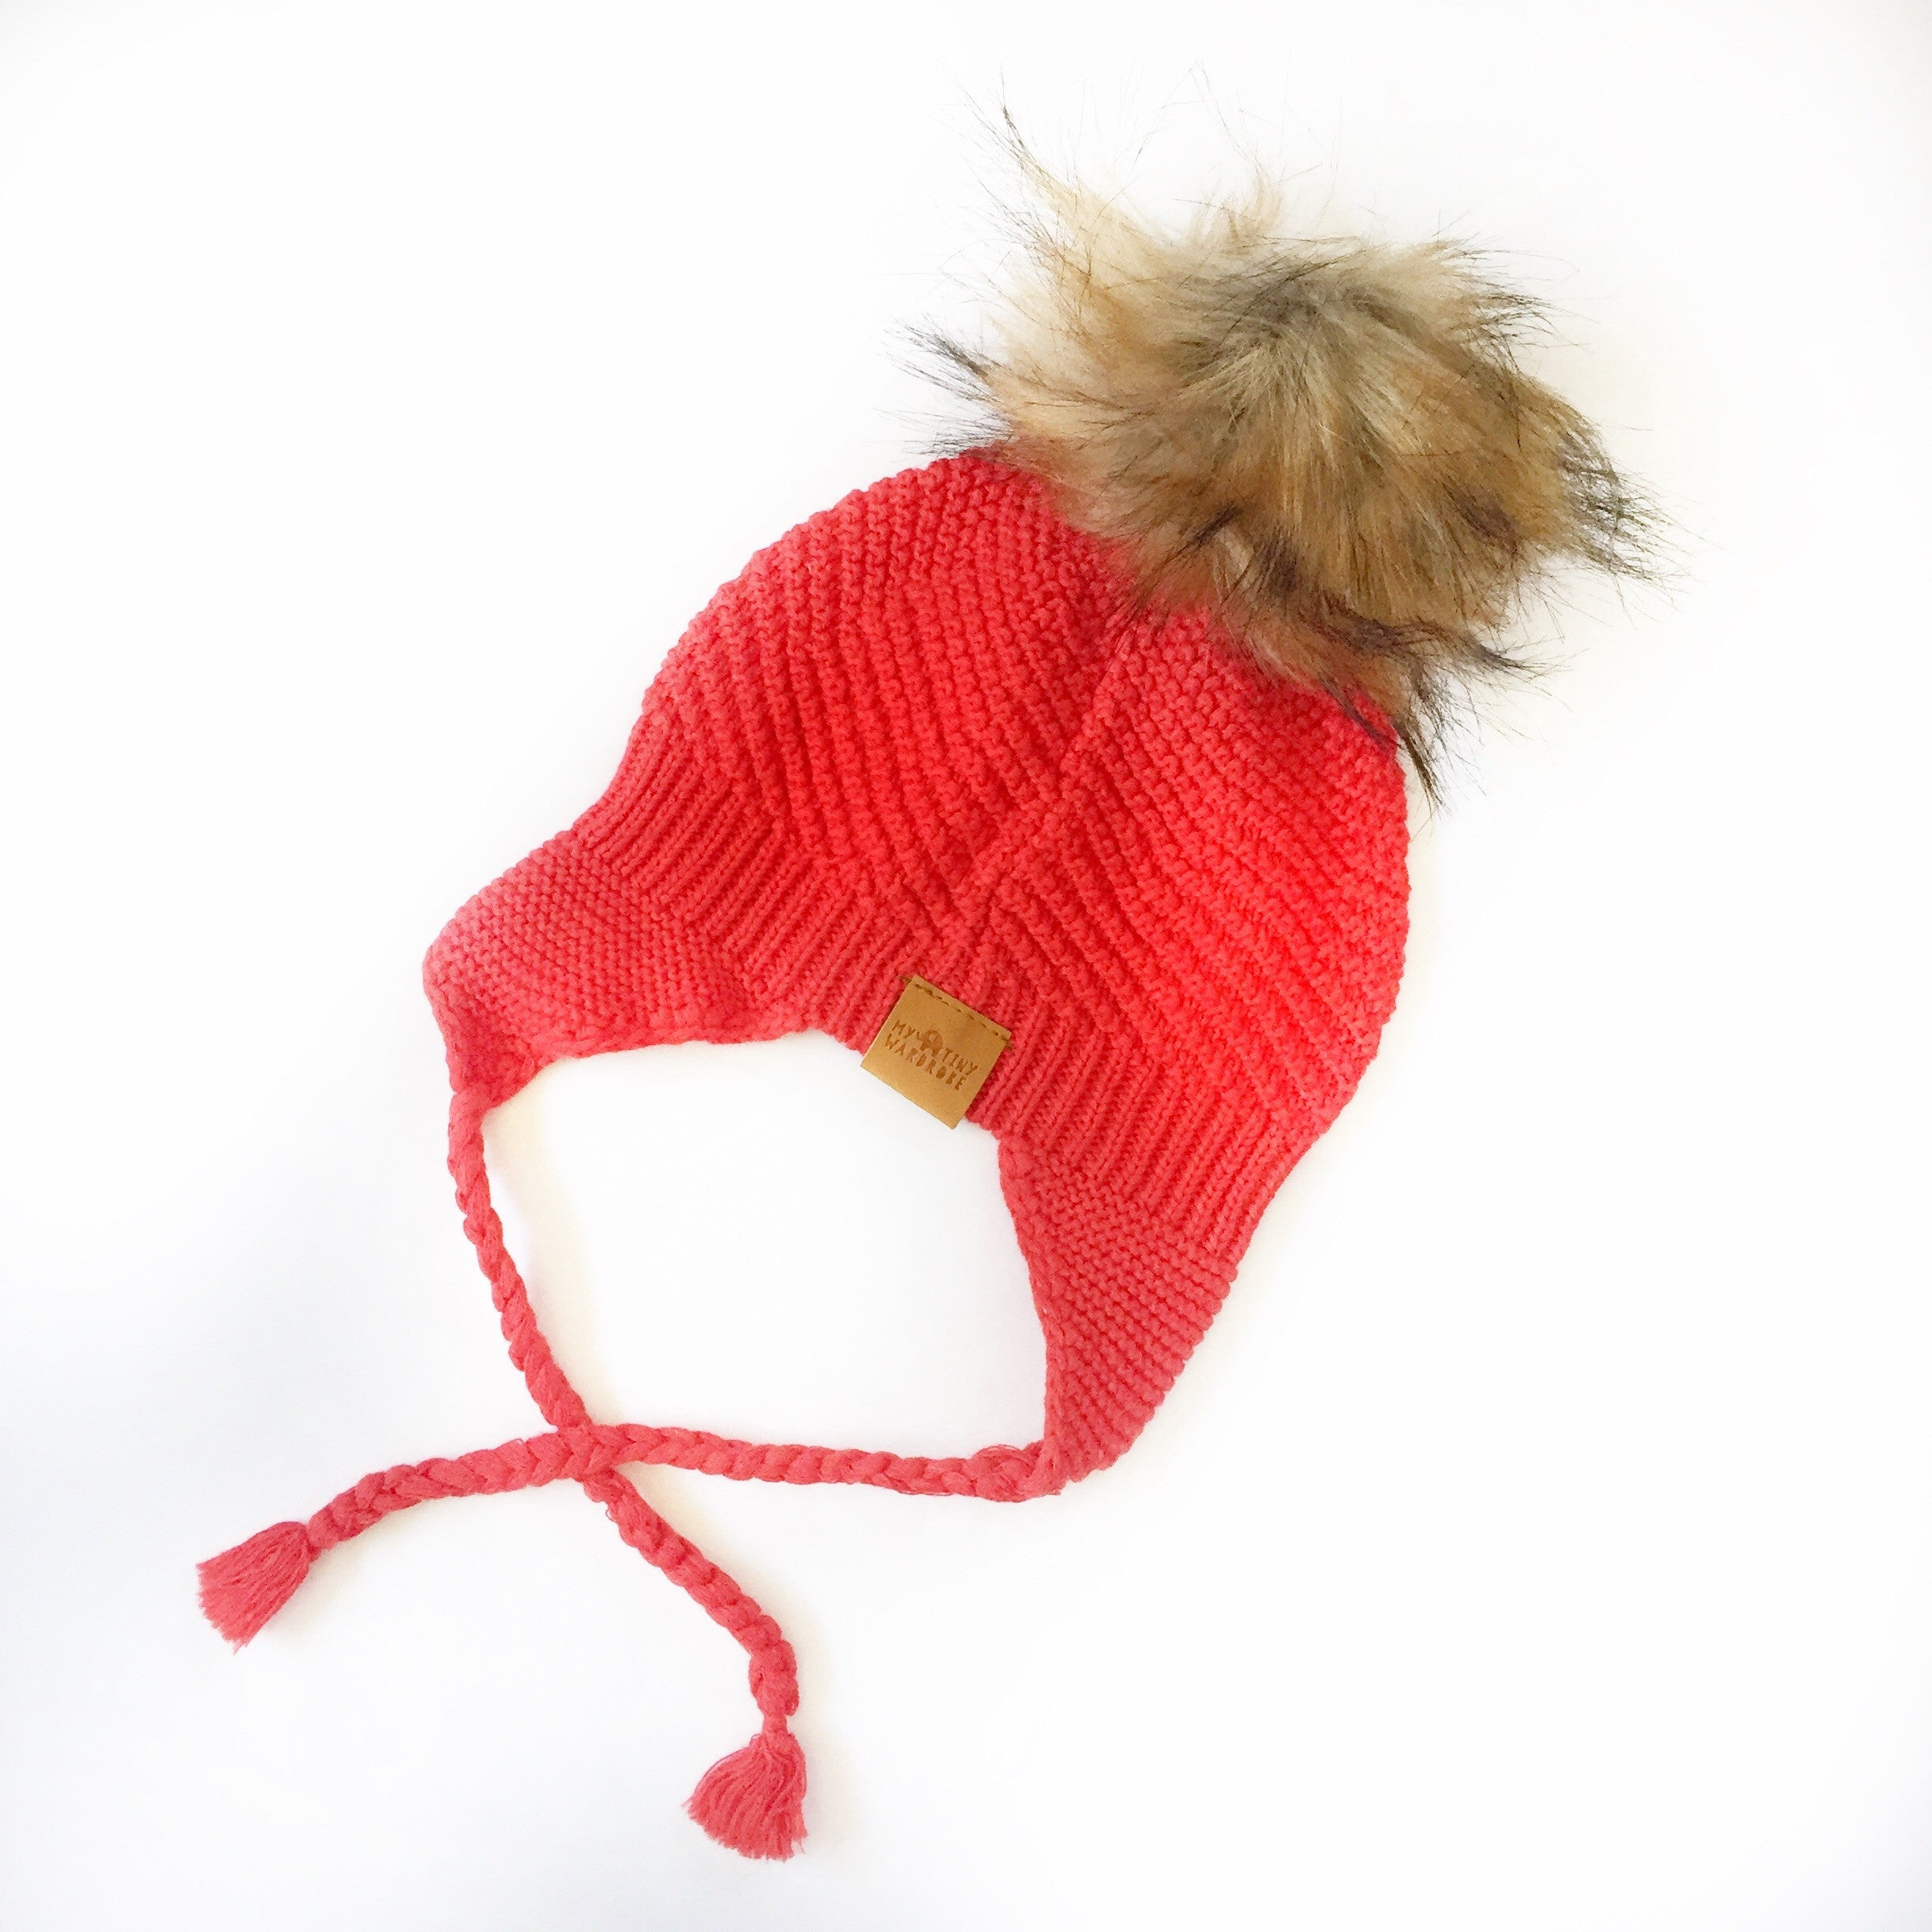 Red Beanie, 100% Cotton, Made in Australia, Limited Edition Boutique Store